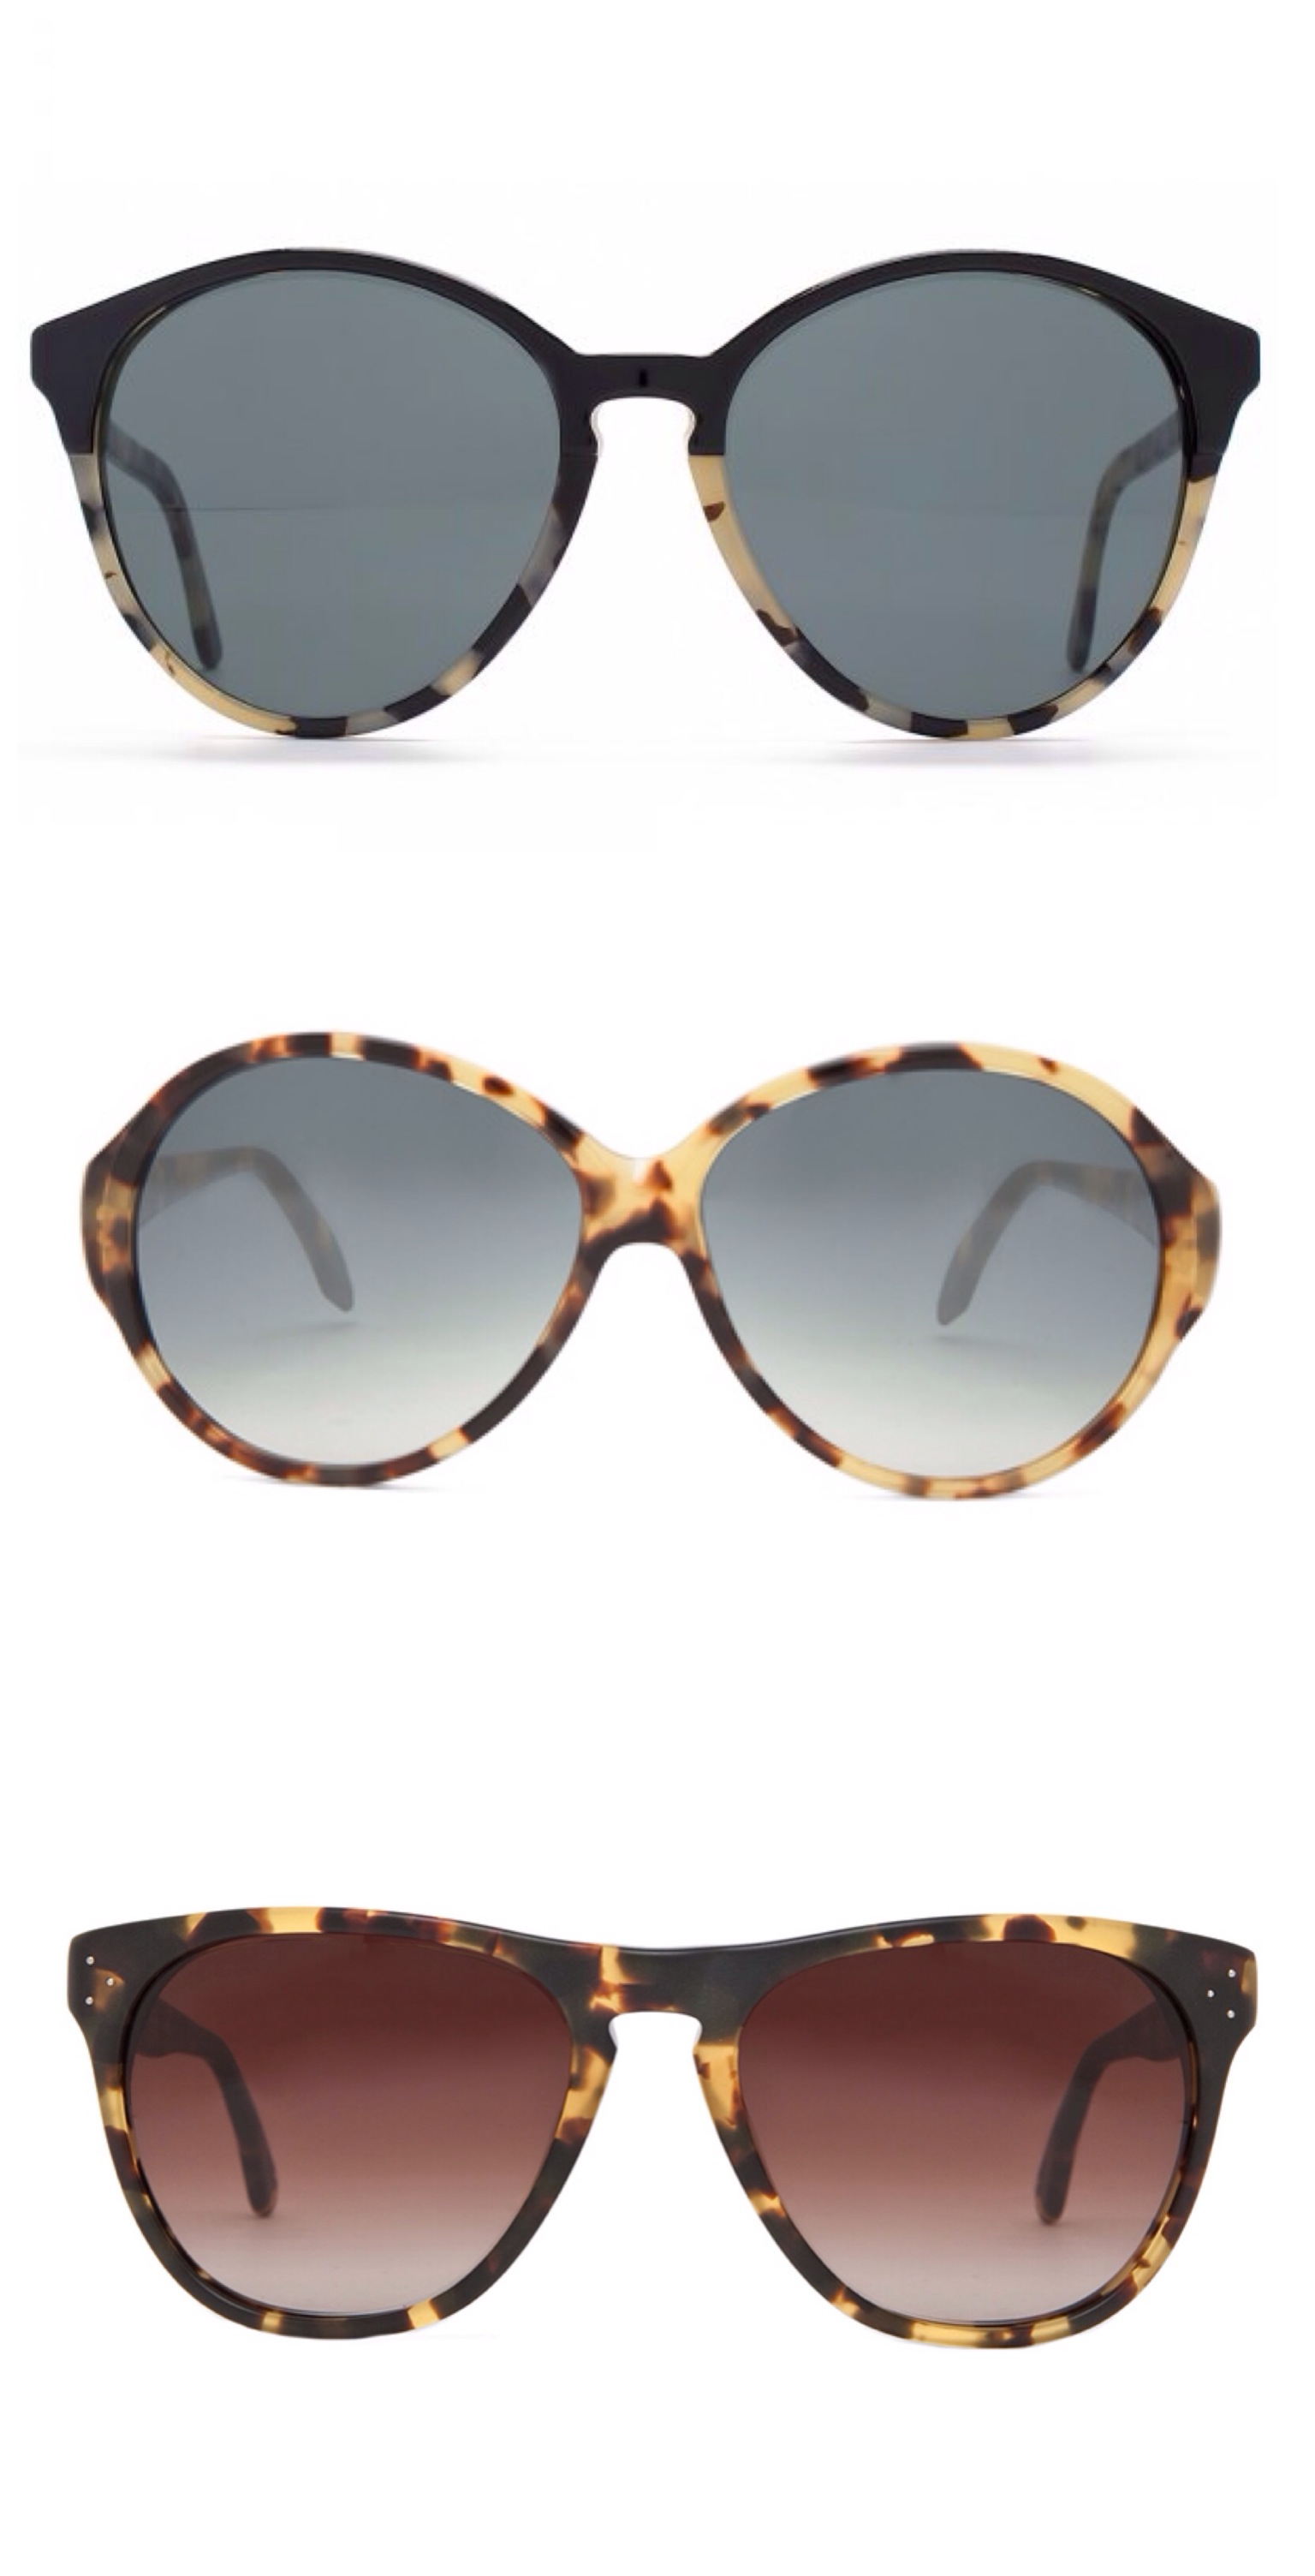 Lydia Hearst sunglasses